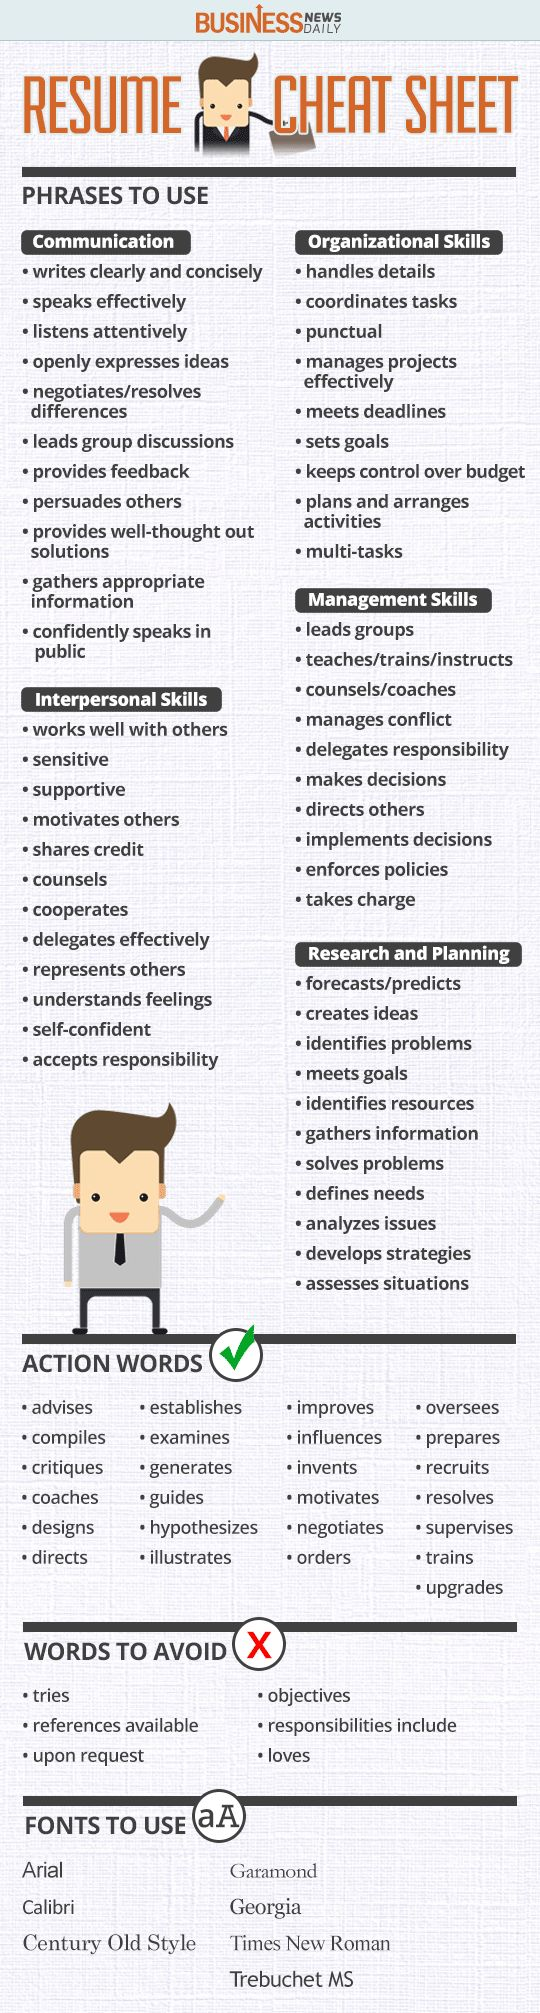 Opposenewapstandardsus  Picturesque  Ideas About Resume On Pinterest  Cv Format Resume Cv And  With Interesting Resume Cheat Sheet Infographic Andrews Almost Done With A Complete Unit On Employment Which With Cool Design Resume Templates Also House Cleaner Resume In Addition What To Write For Skills On Resume And Resume Pics As Well As Resume Template For Internship Additionally Retail Sales Associate Job Description For Resume From Pinterestcom With Opposenewapstandardsus  Interesting  Ideas About Resume On Pinterest  Cv Format Resume Cv And  With Cool Resume Cheat Sheet Infographic Andrews Almost Done With A Complete Unit On Employment Which And Picturesque Design Resume Templates Also House Cleaner Resume In Addition What To Write For Skills On Resume From Pinterestcom